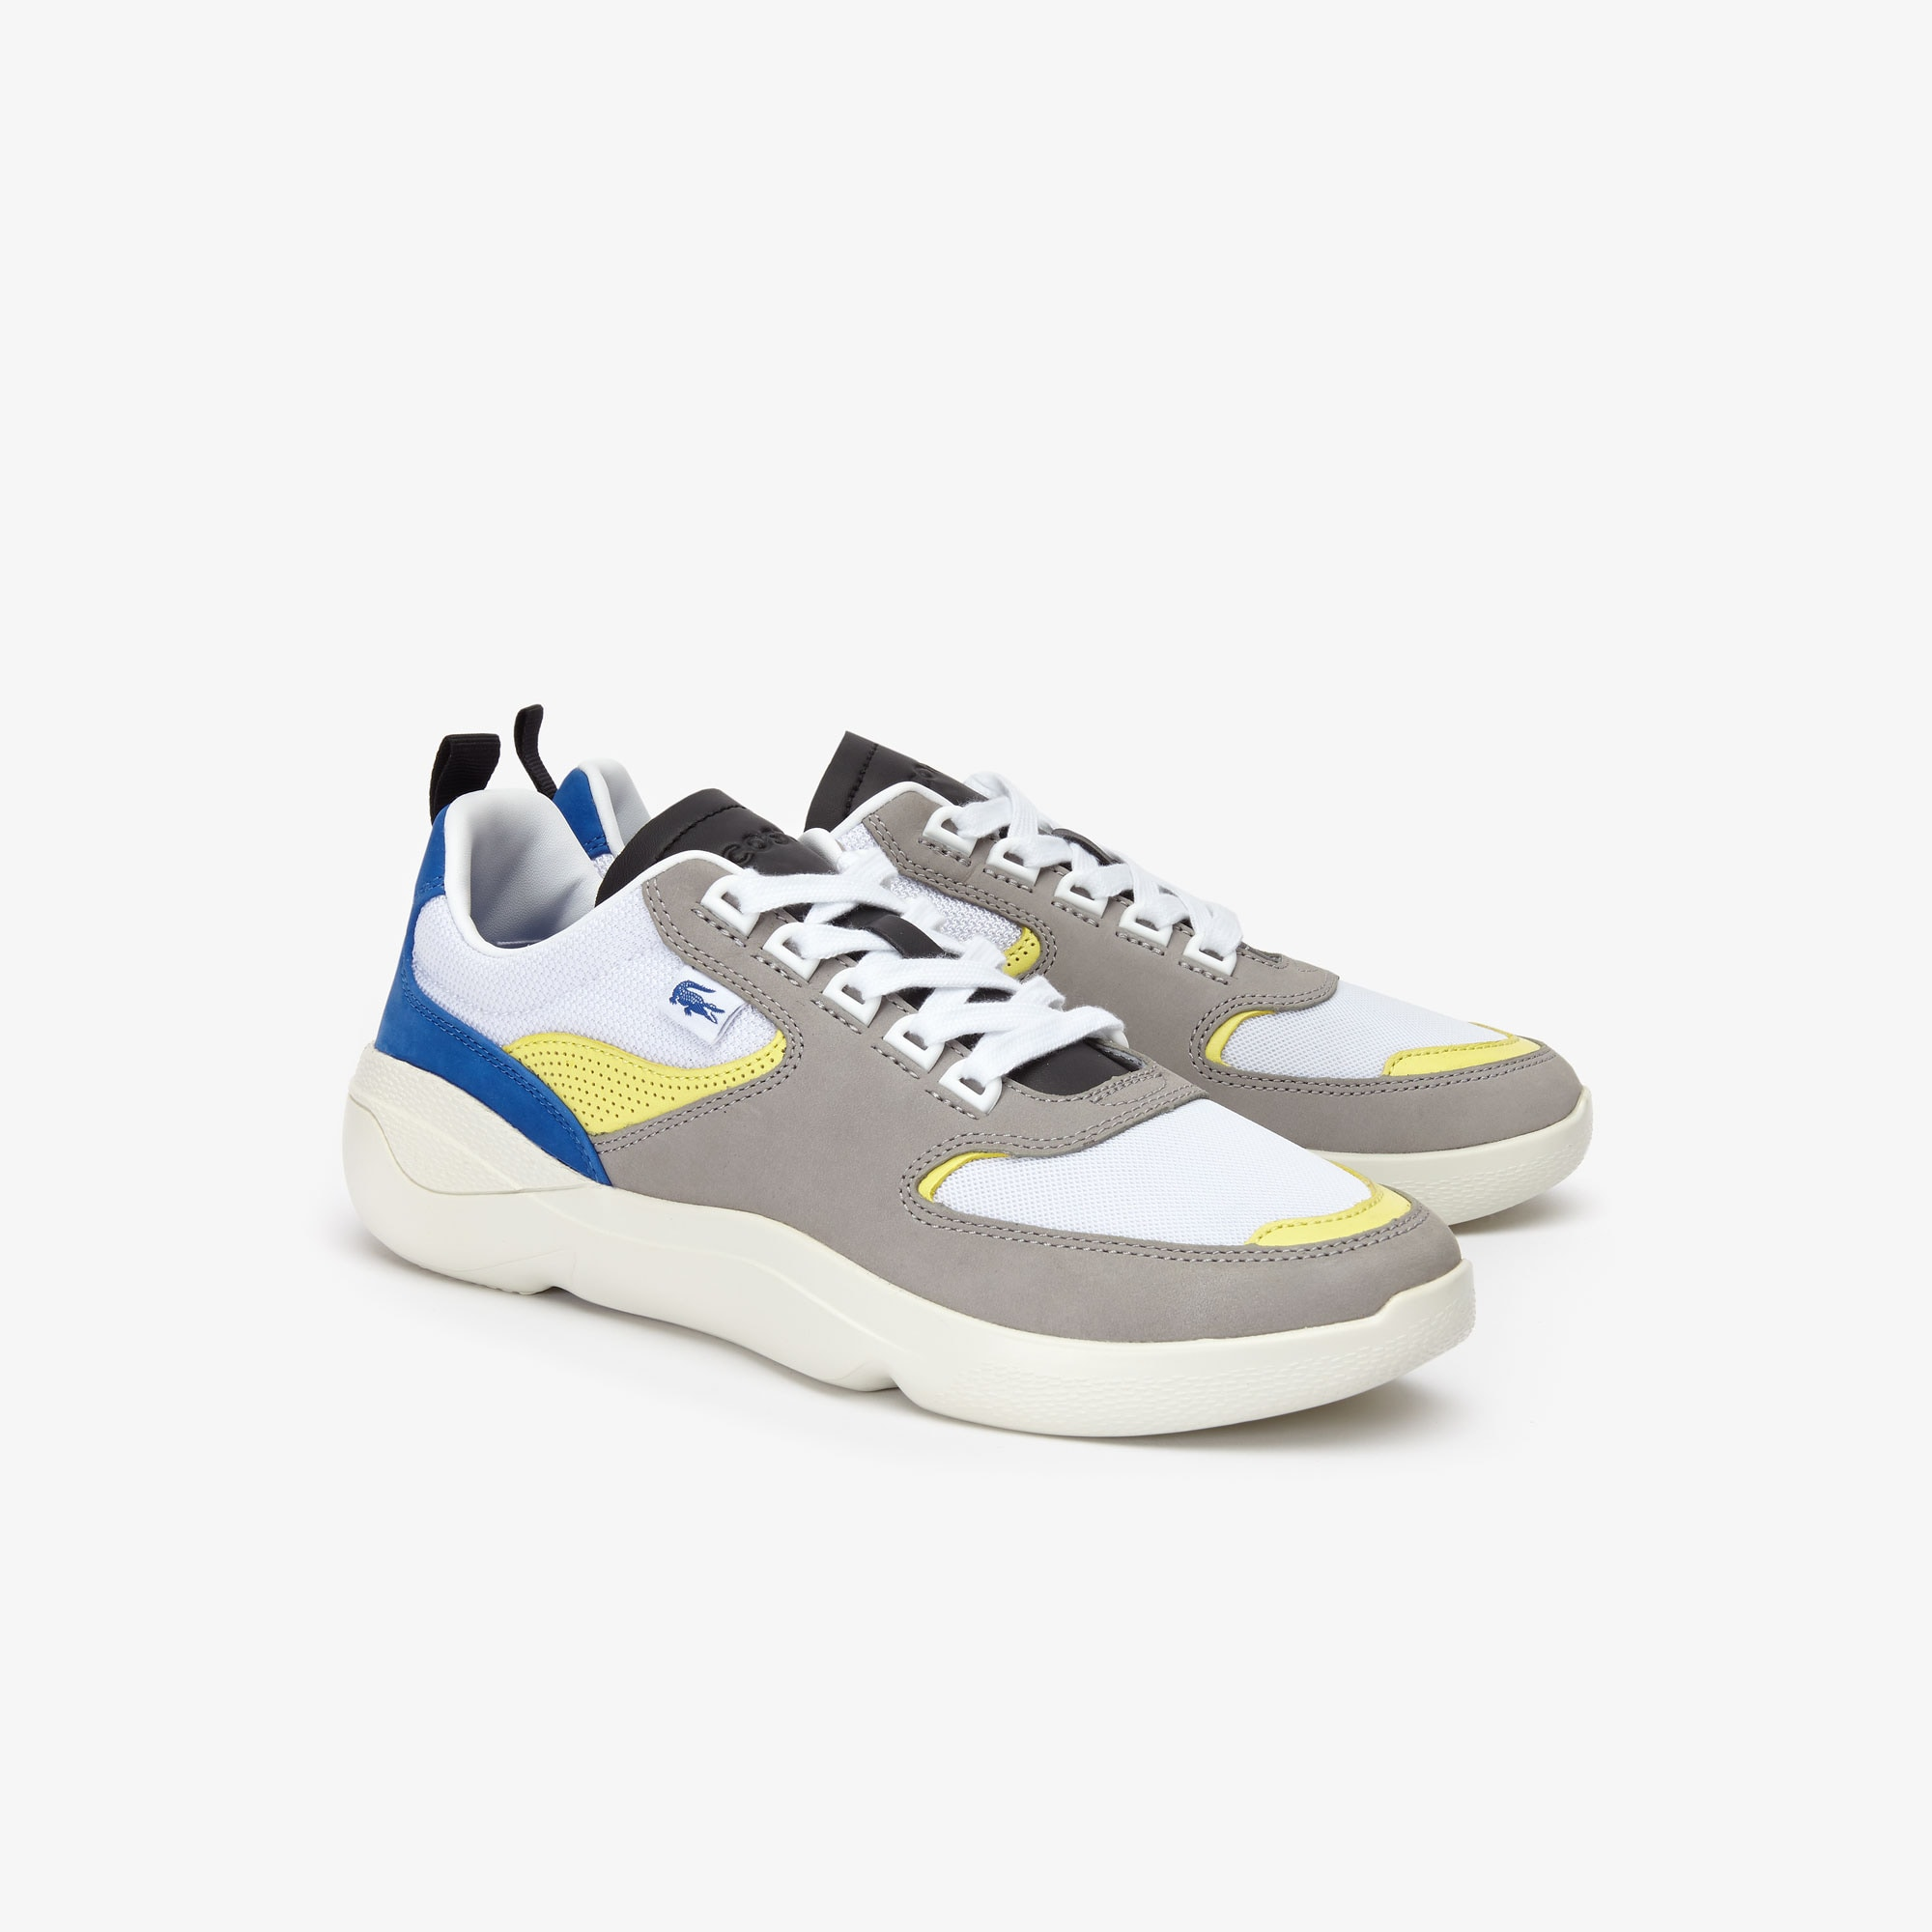 Men's Wildcard Leather and Textile Trainers